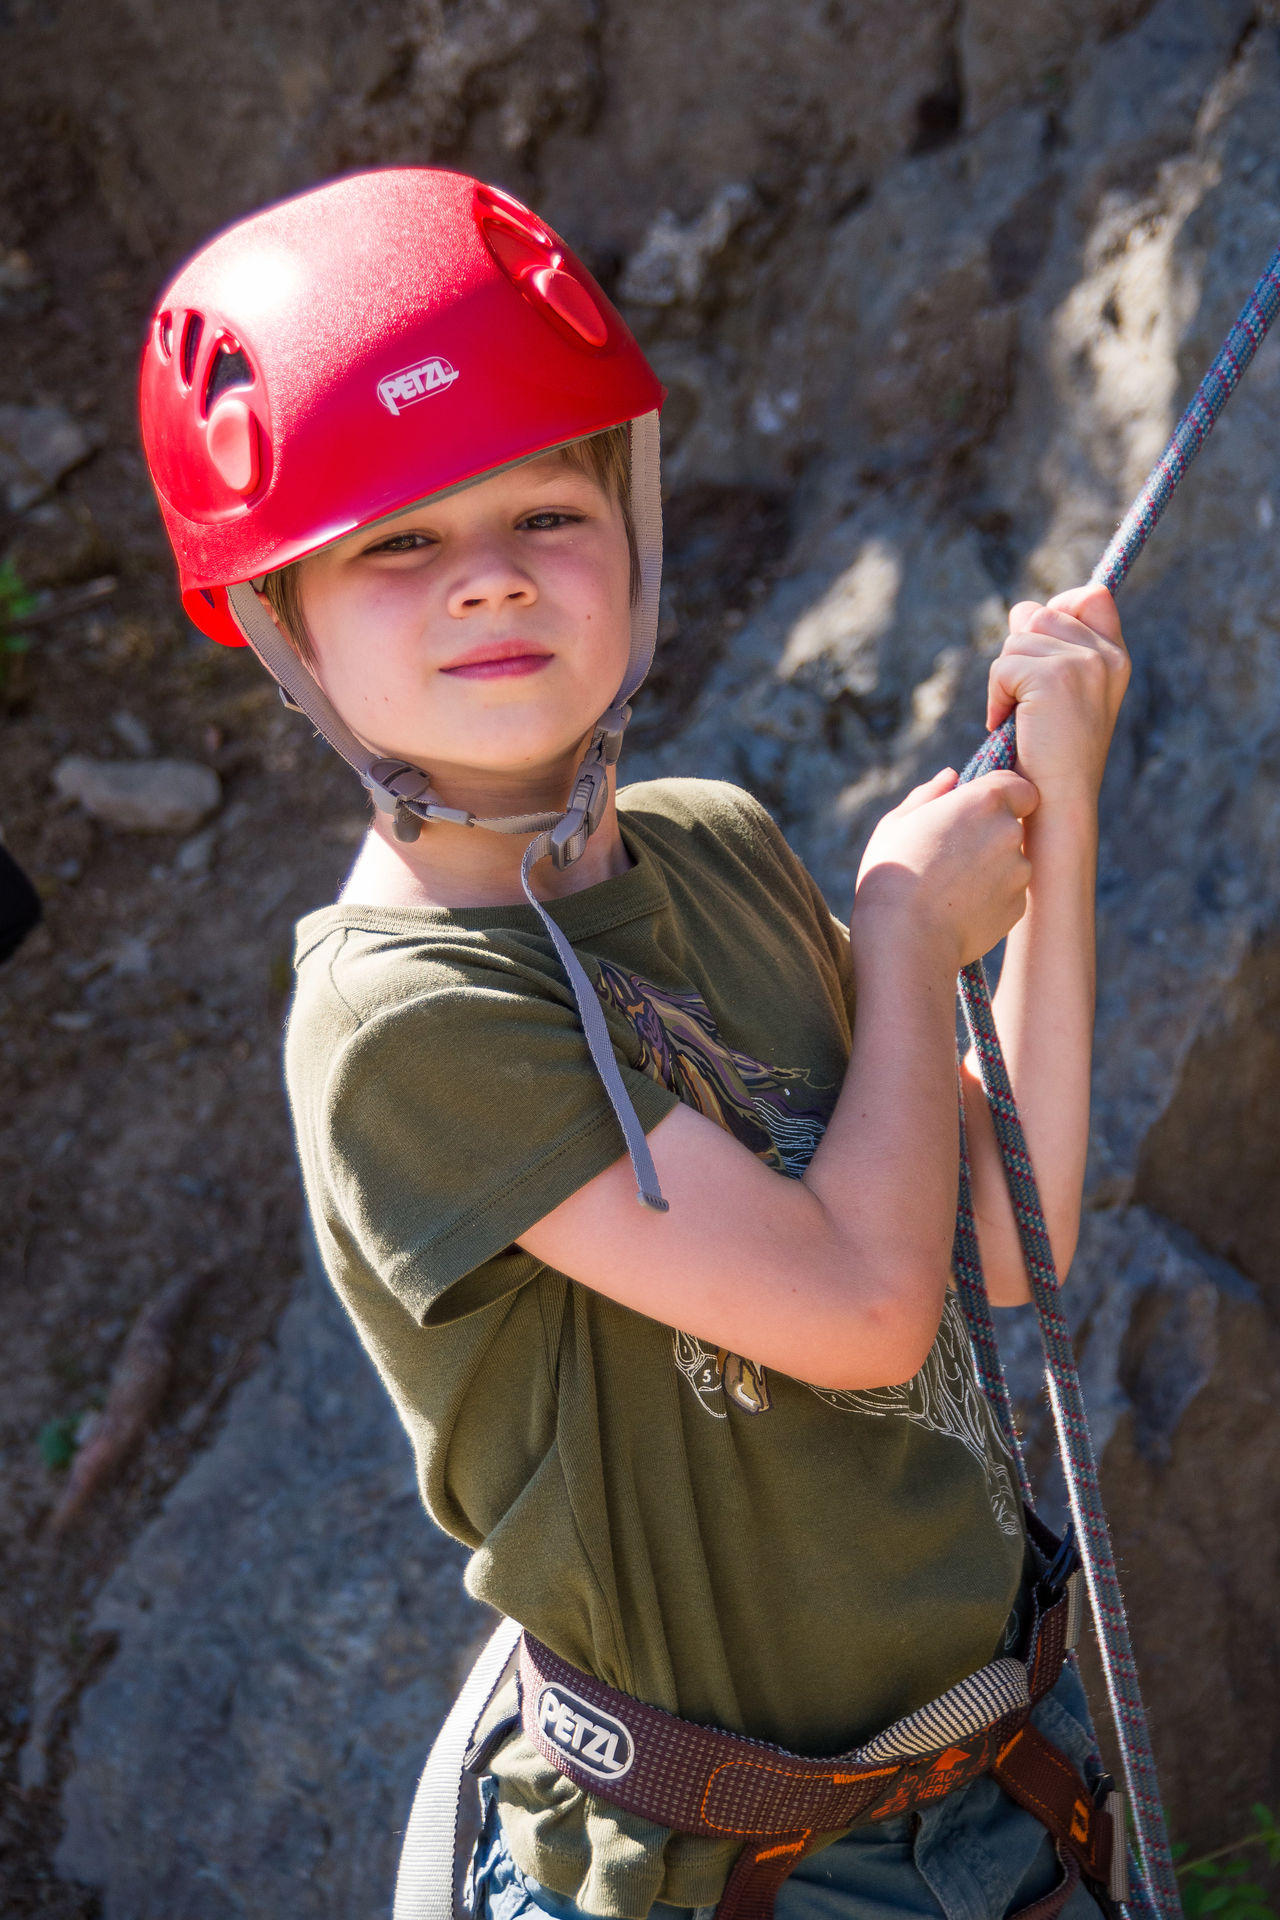 Childhood Climbing A Mountain Focus On Foreground Helmet Leisure Activity Looking At Camera Sports Young Child In Sunlight And Shadow